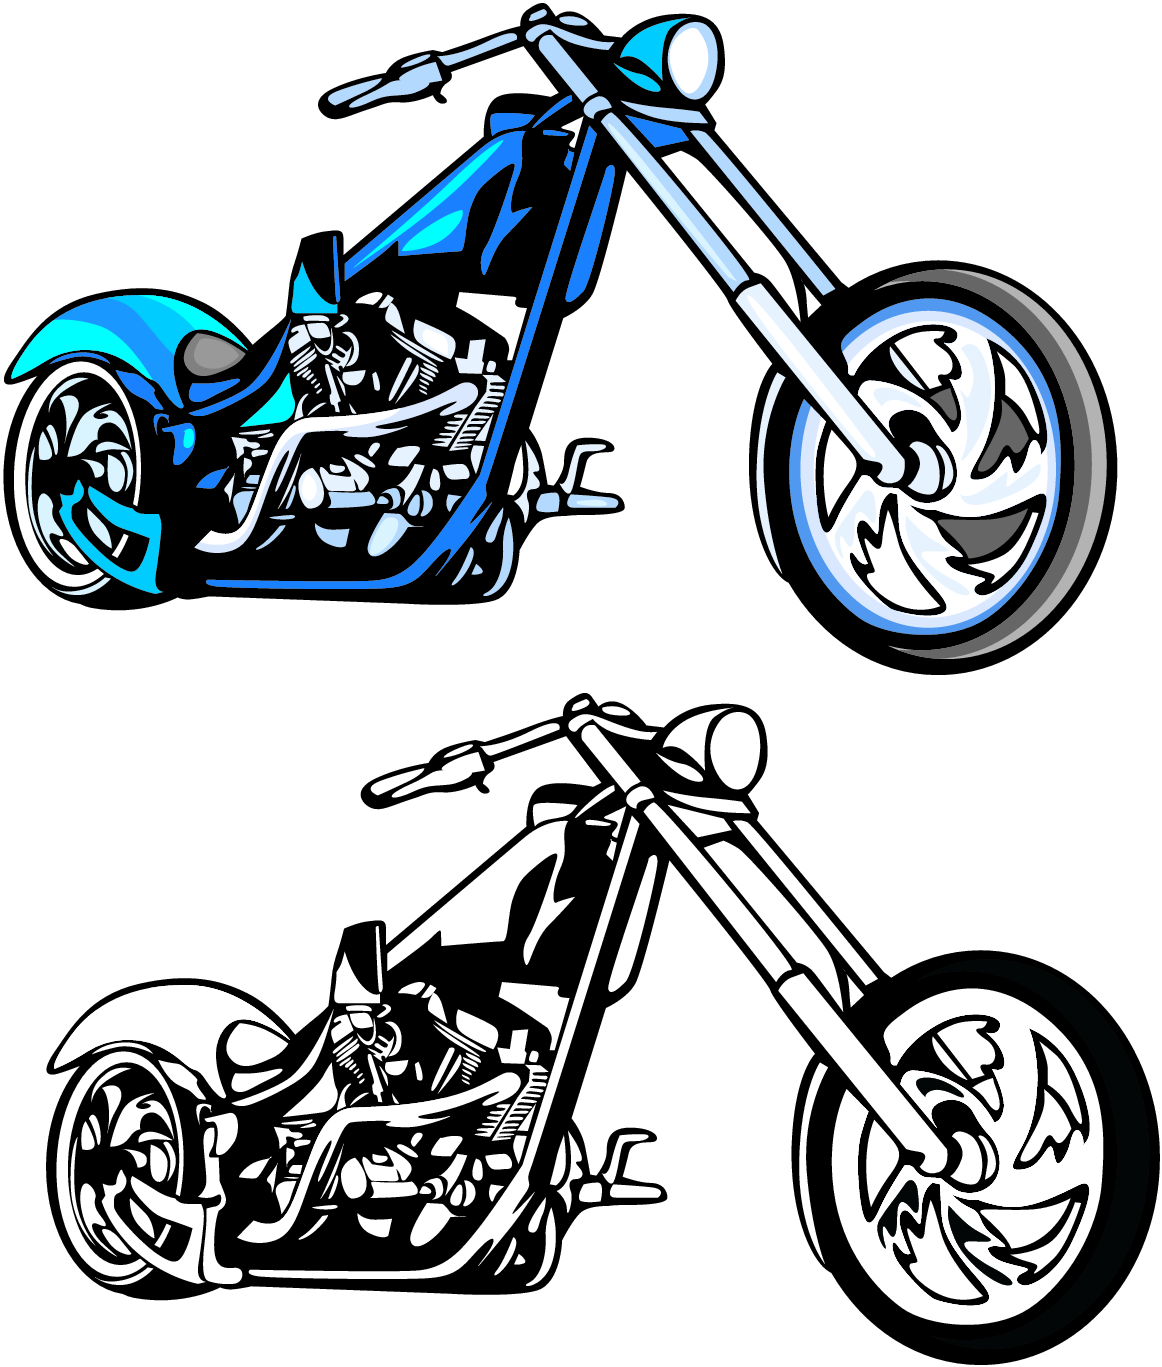 harley davidson clip art free 2 projects to try pinterest clip rh pinterest com harley davidson clip art free download harley davidson clip art design